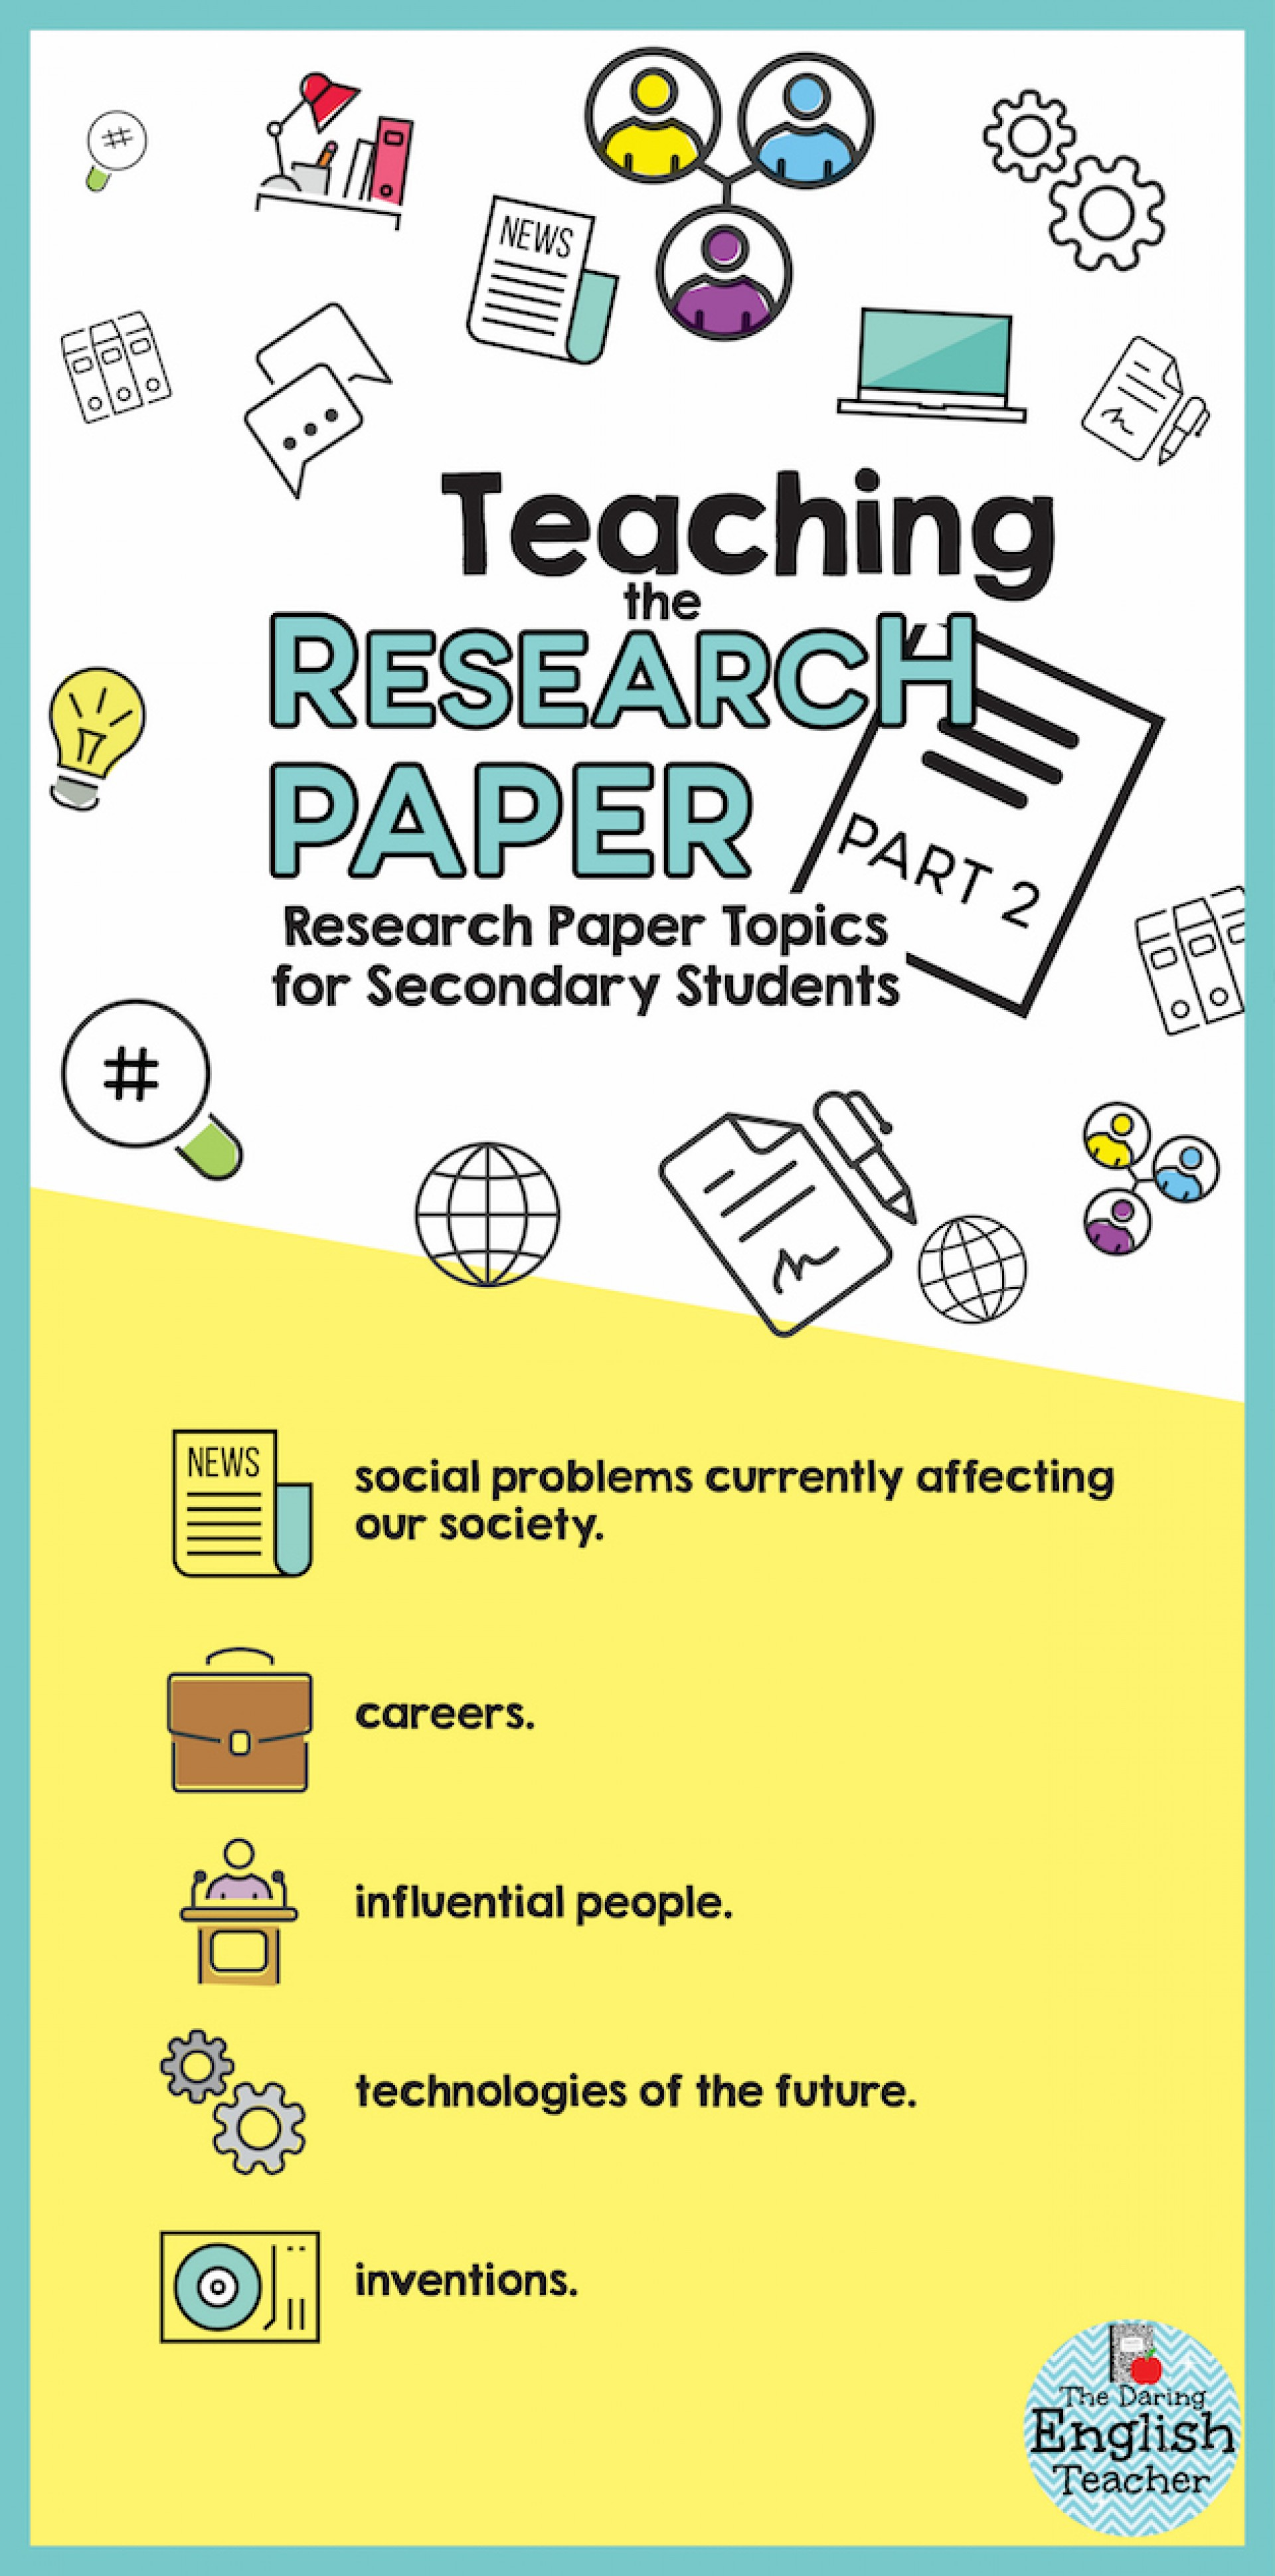 009 Infographic2bp22b2 High School Research Paper Astounding Topics Philippines Science For Students 2019 1920